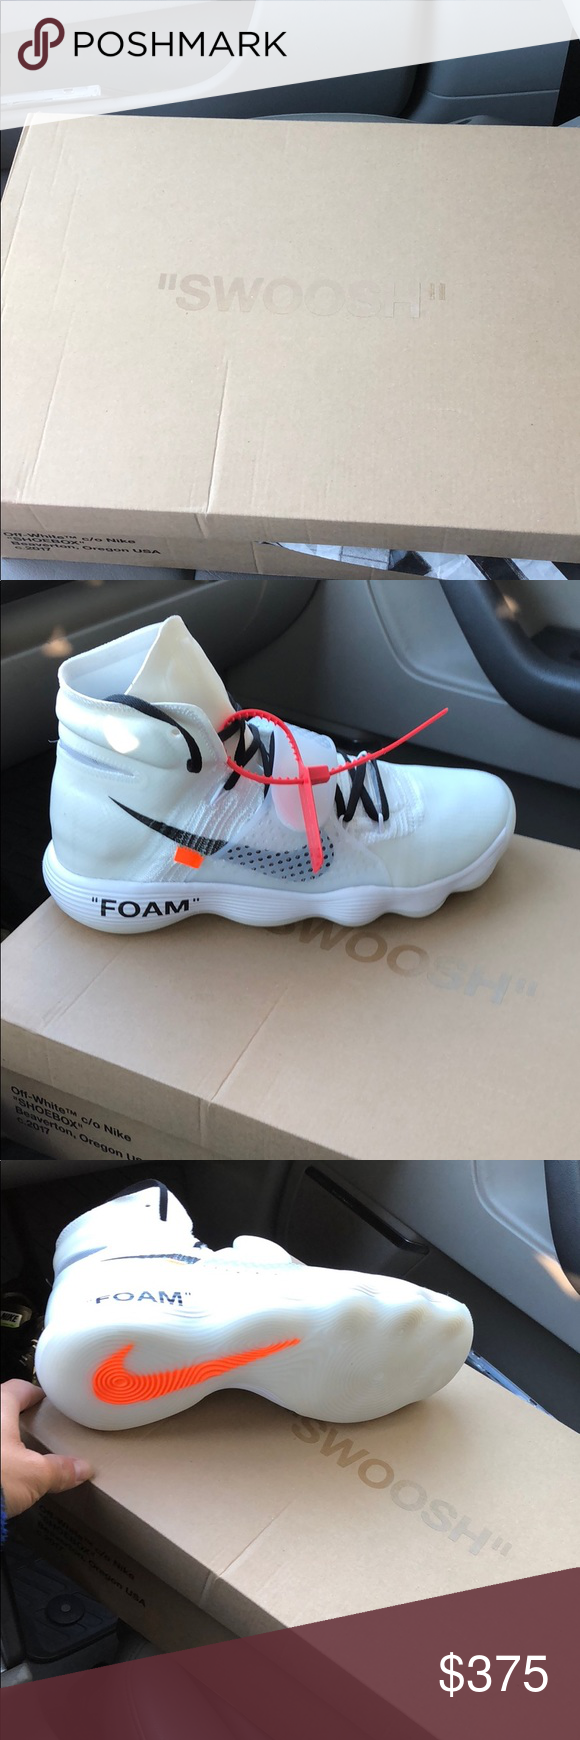 f05df0e520d1 OFF WHITE HYPERDUNKS BLACK LACED OFF WHITE VIRGIL HYPERDUNKS SIZE 11.5 COMES  WITH TWO OTHER PAIRS OF LACES (and original laces) Nike Shoes Sneakers